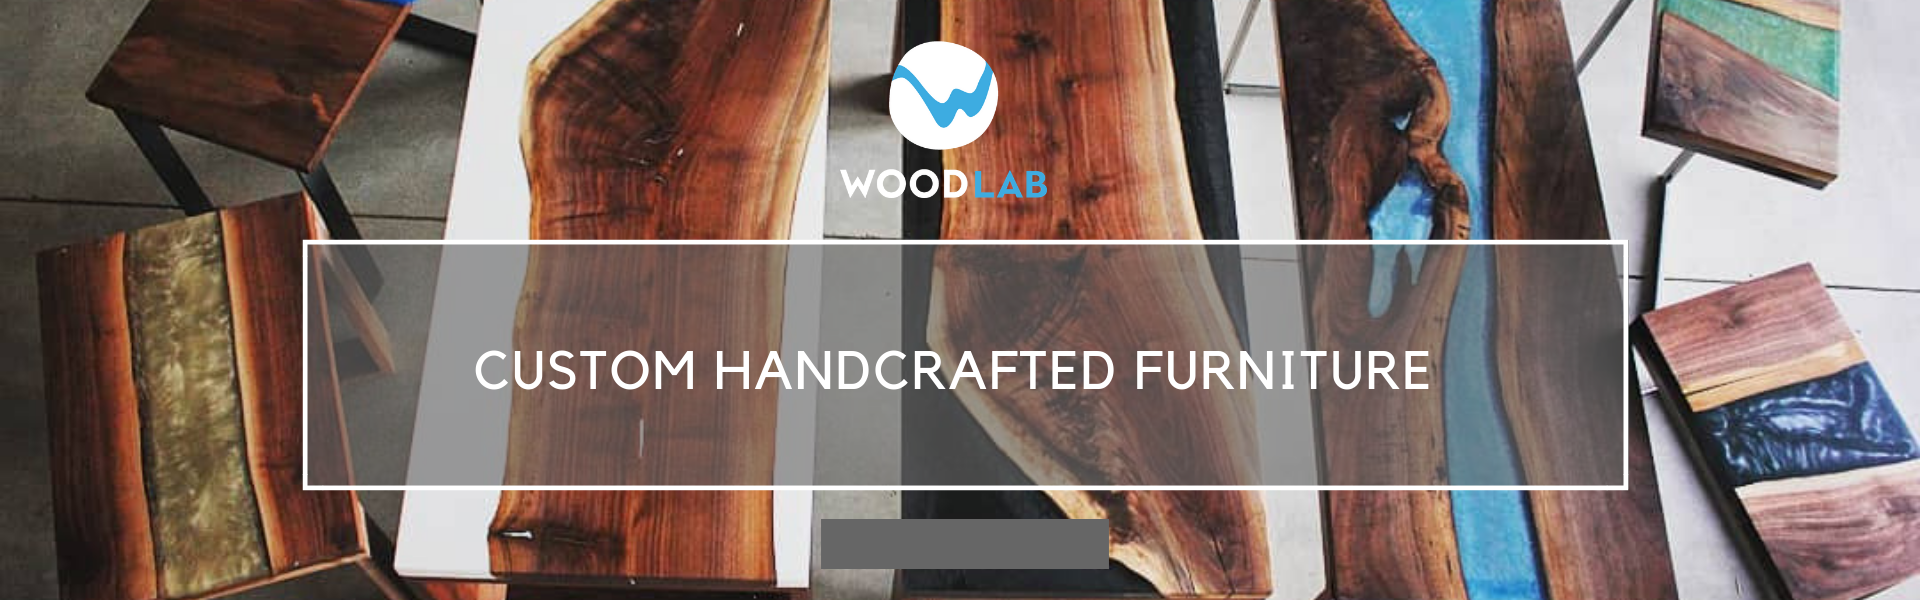 custom handcrafted furniture